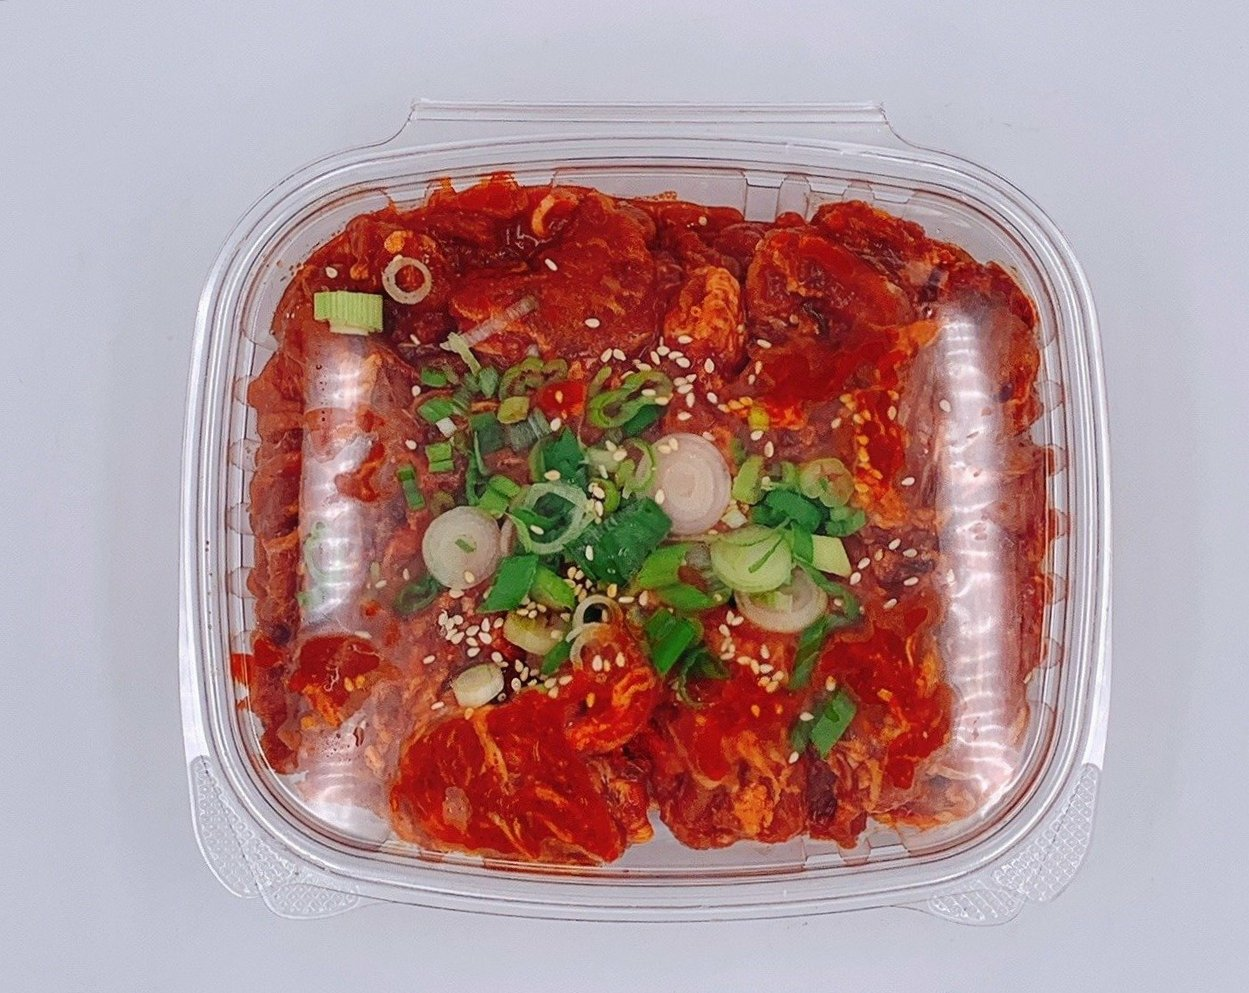 Jeyuk (Marinated Spicy Pork) 1lb